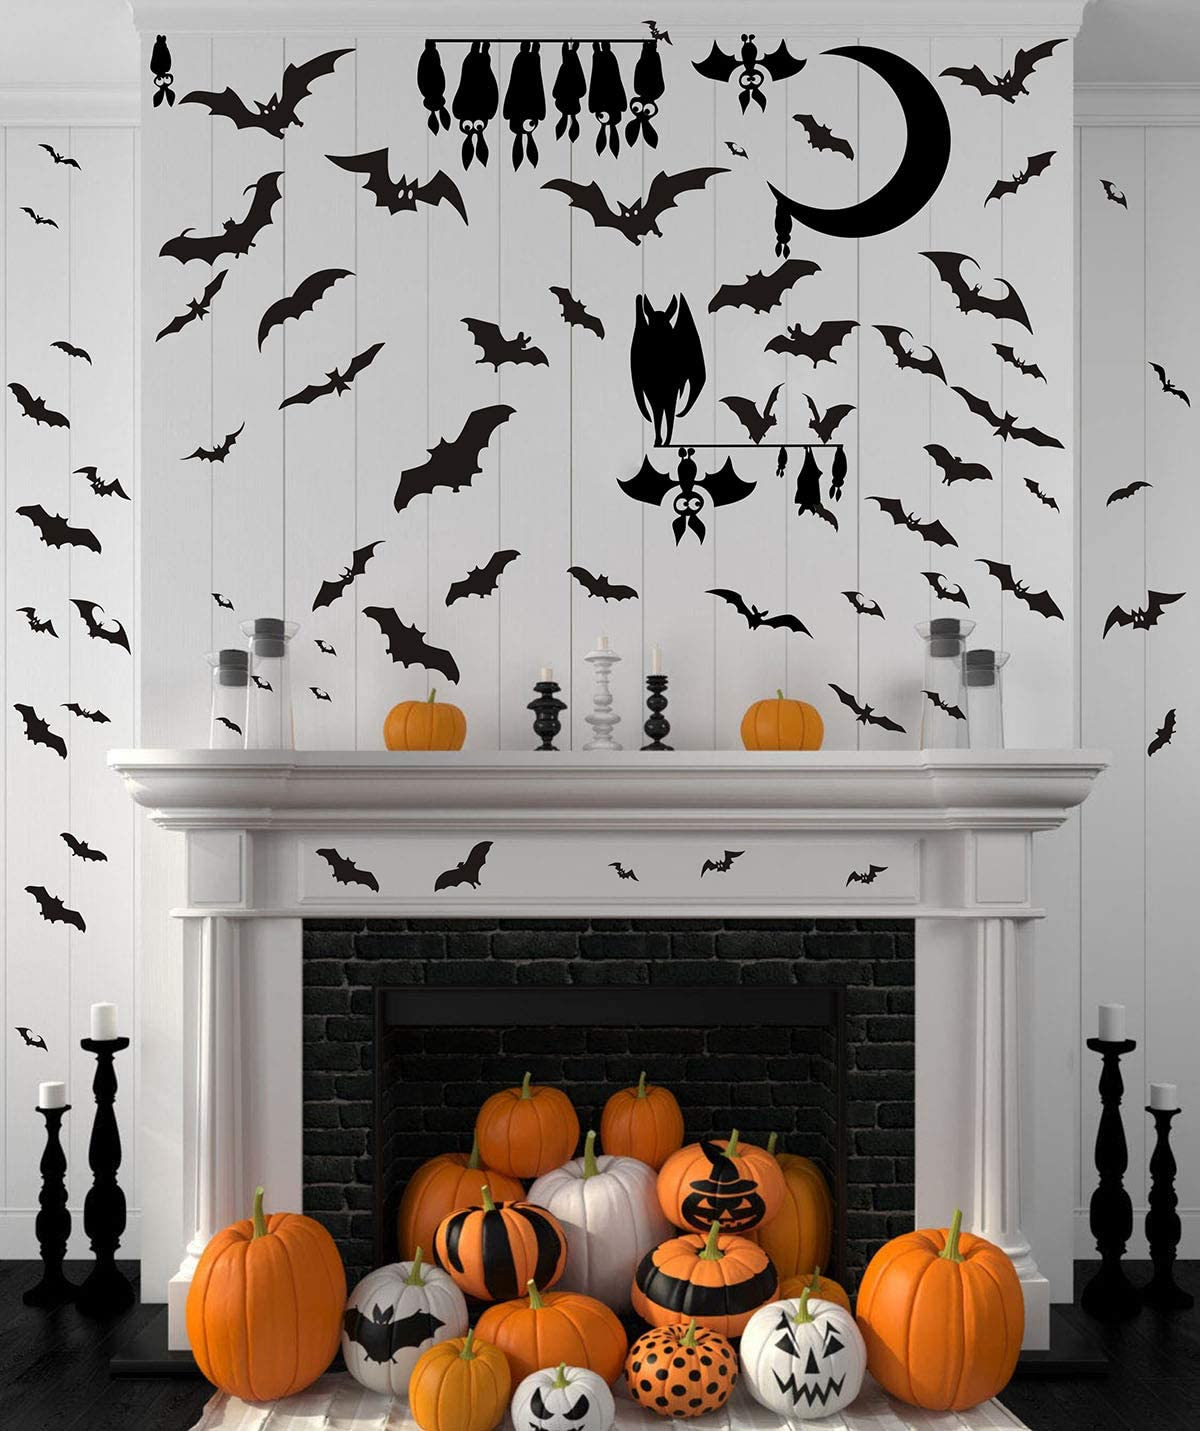 Halloween Bats Wall Decals Halloween Party Decorations Halloween Window Clings Decorations Bats Decals Halloween Cartoon Bat Sticker Removable and Peel&Stick Decals